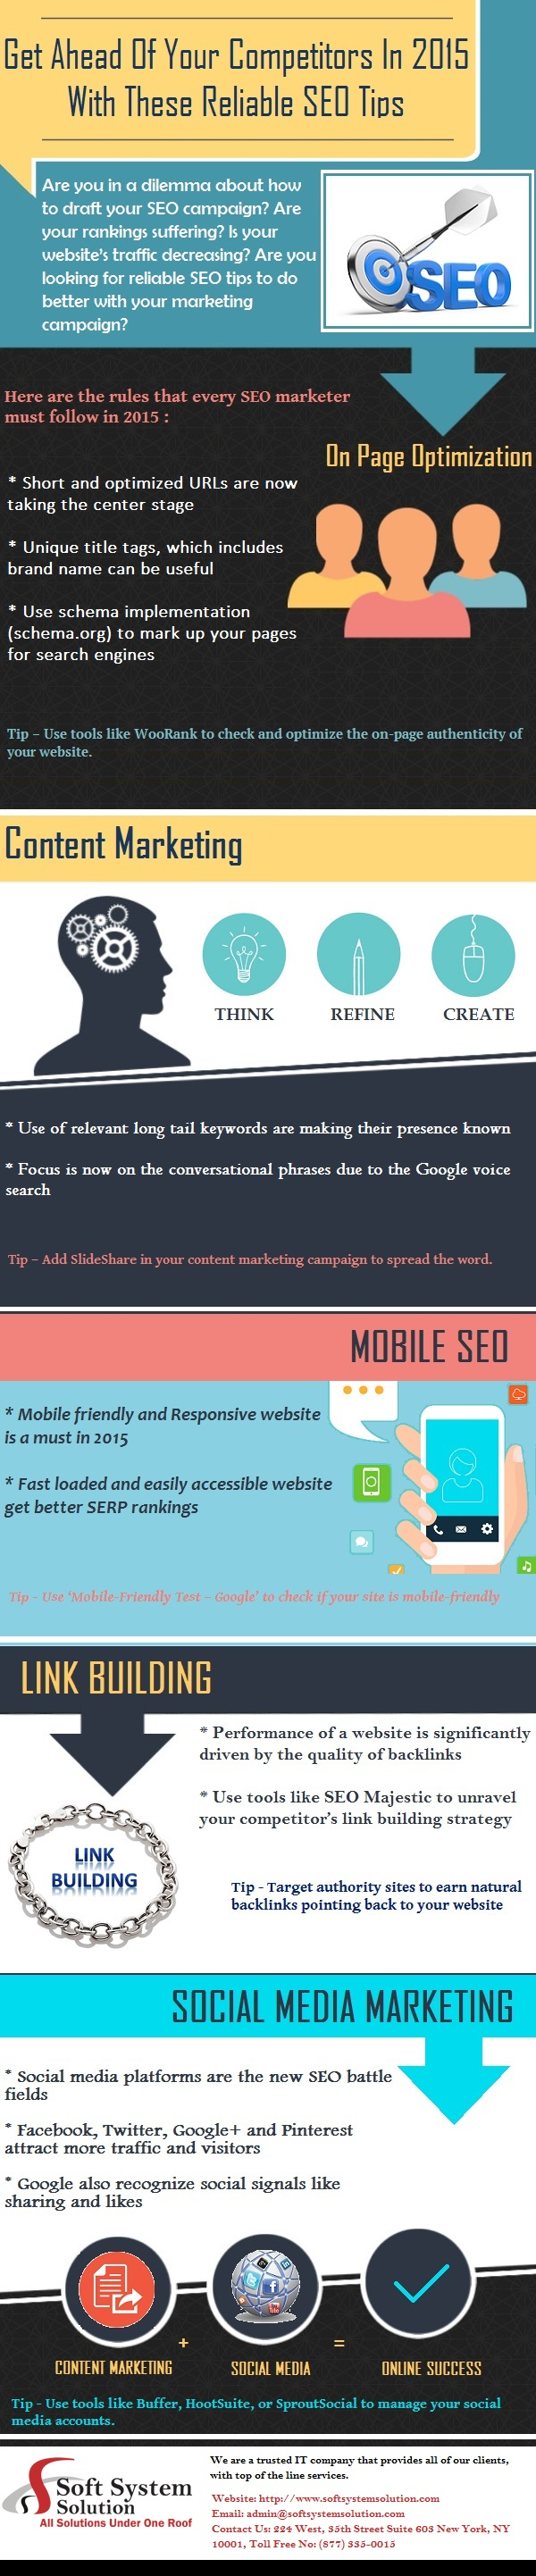 Get Ahead Of Your Competitors In 2015 With These Reliable SEO Tips